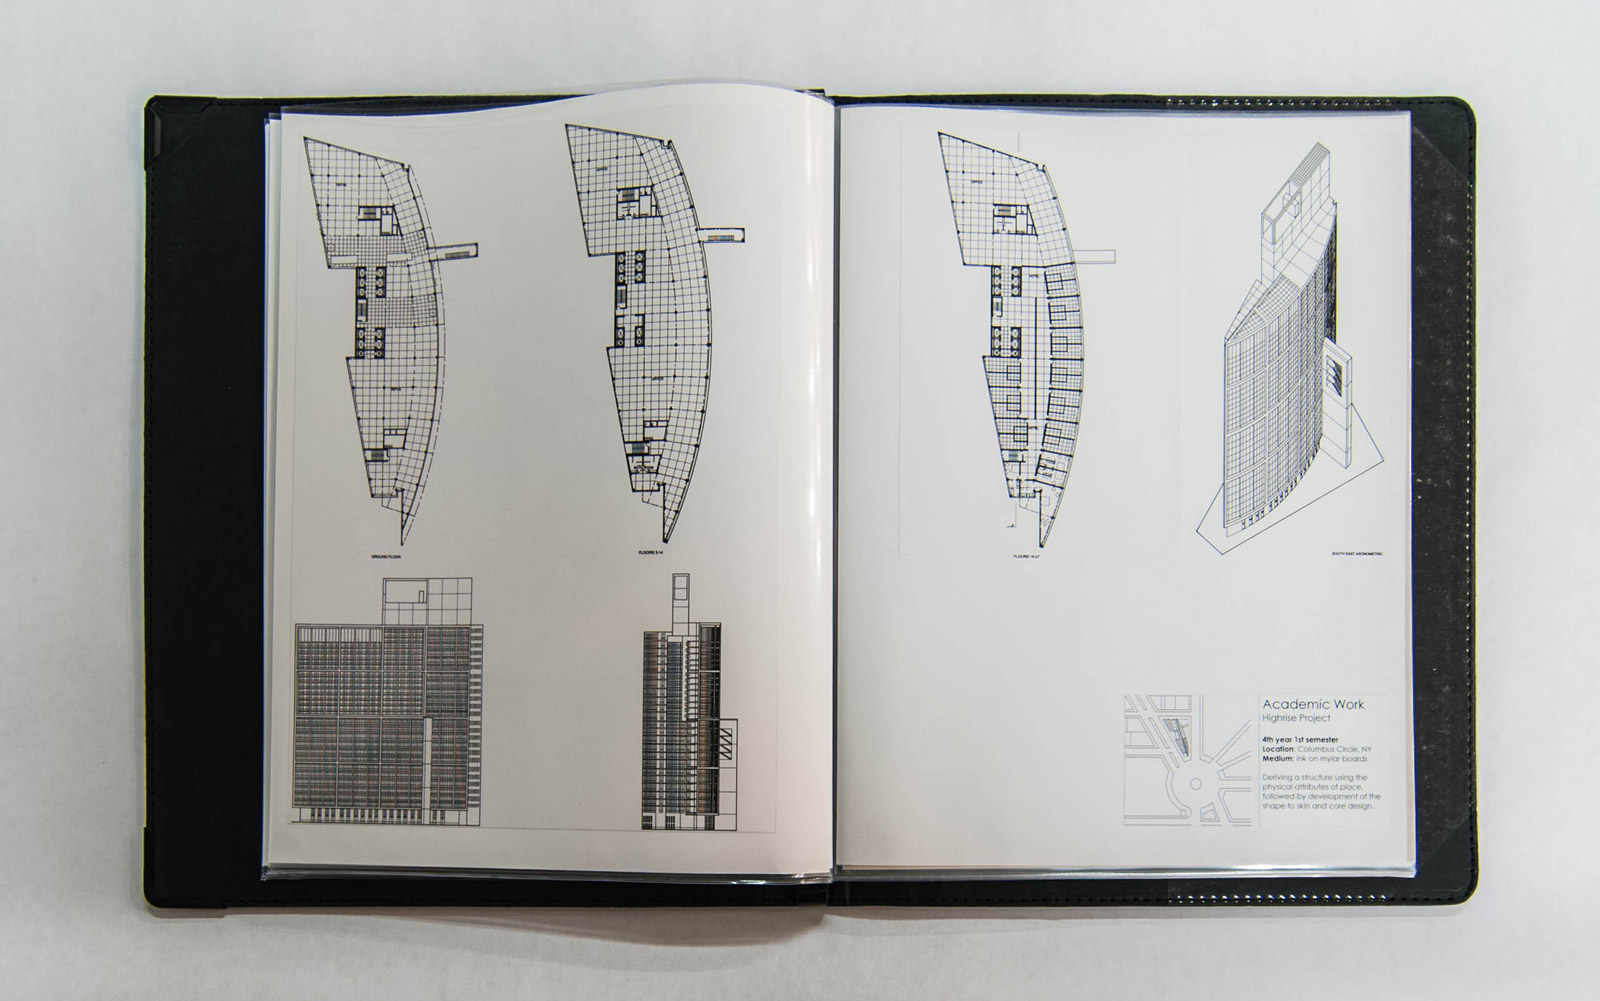 Conosciuto A Student's Guide to the Architectural Portfolio | BUILD Blog HH81